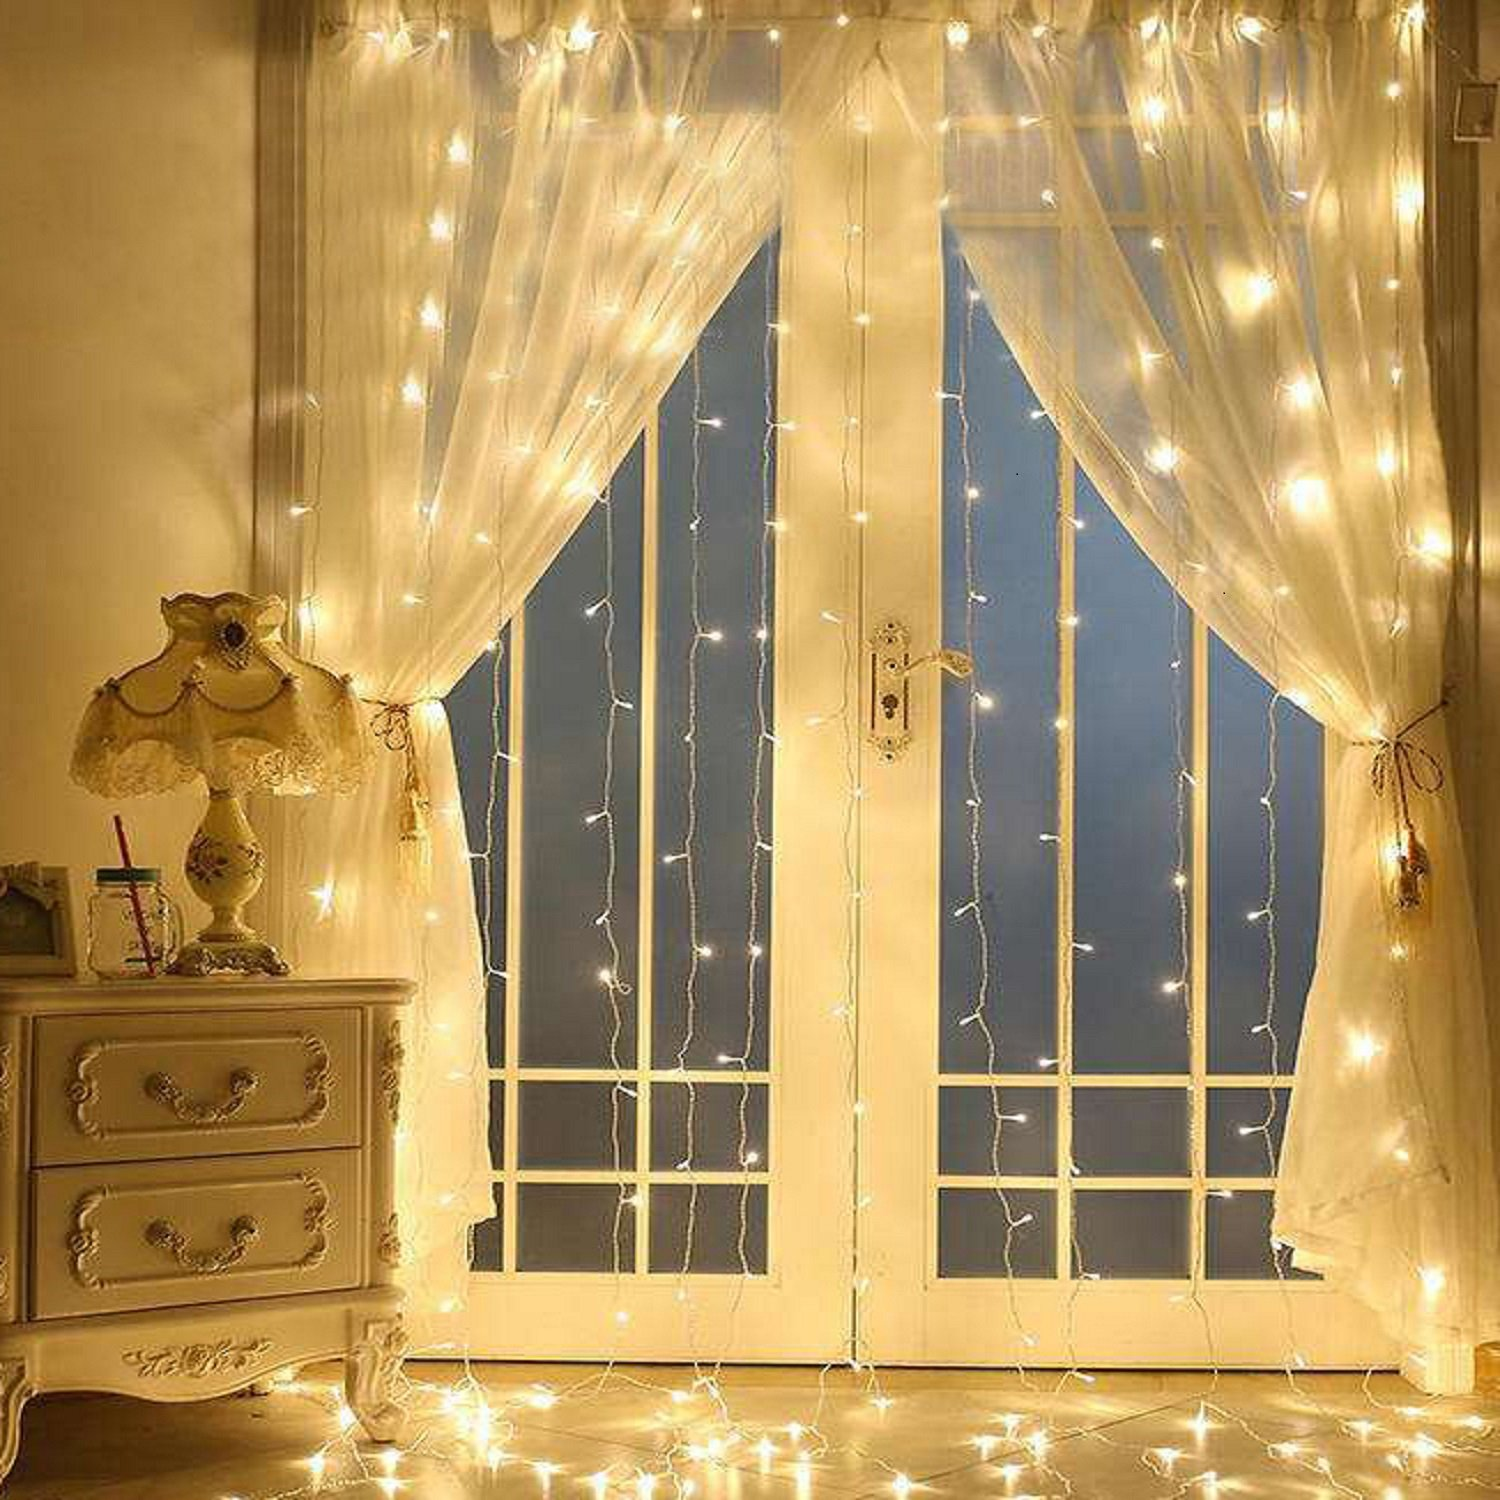 Window Curtain Icicle Lights, LinkStyle 304 LEDS String Fairy Starry Twinkle Stars Lights 9.8ft x 9.8ft with 8 Modes for Wedding Party Home Patio Lawn Garden Bedroom Outdoor Indoor Wall Lights